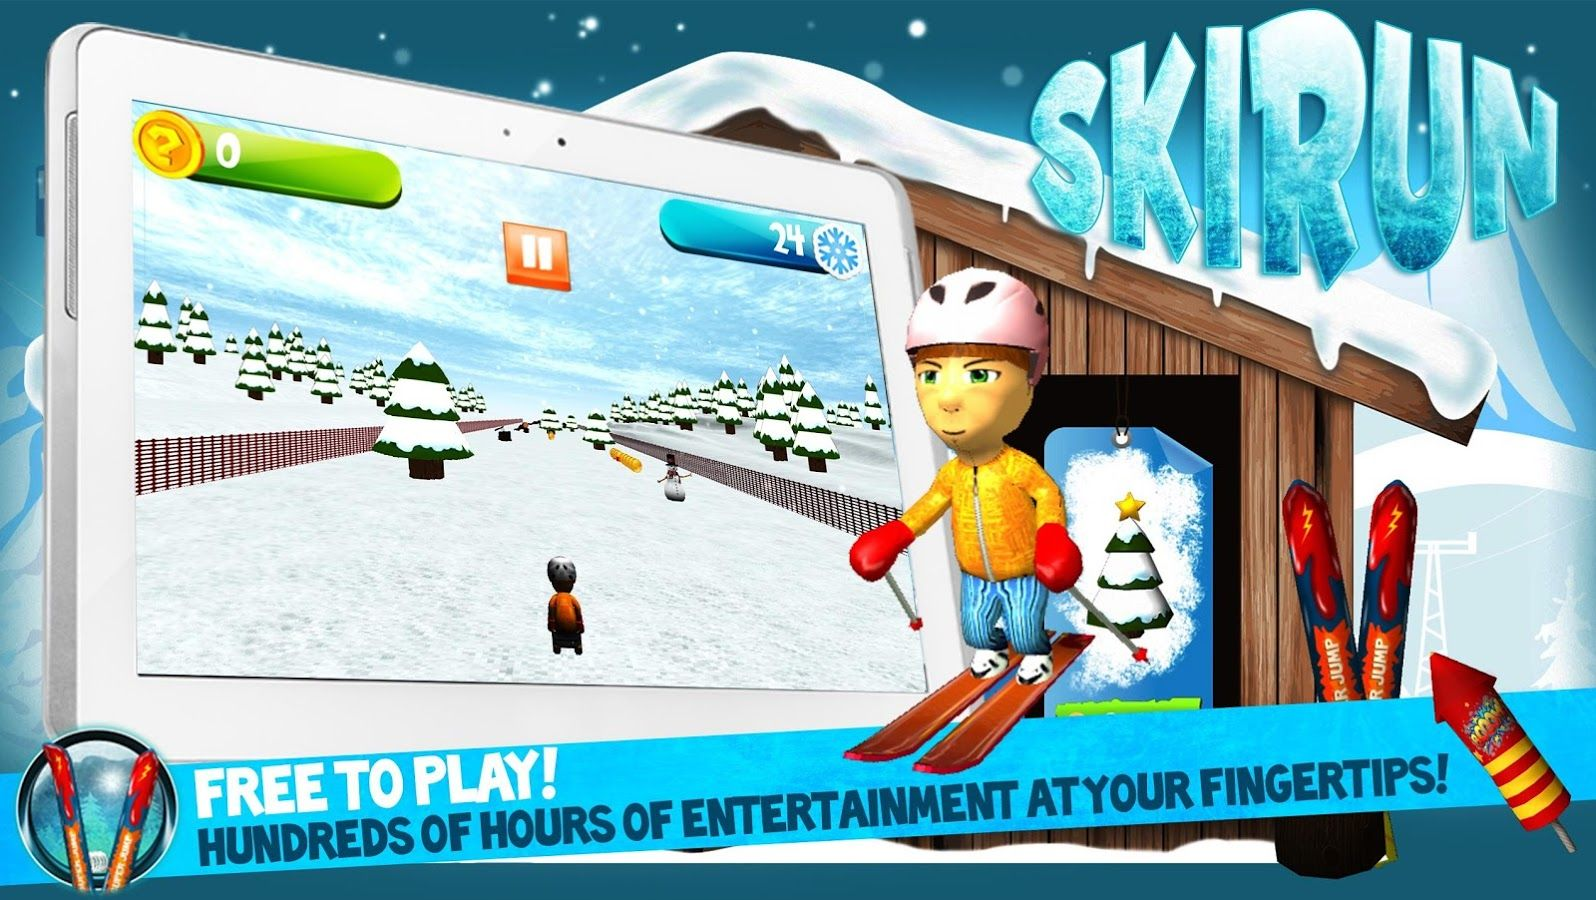 Ski Run, by Twin Games for #Android #indiegames #videogames #gamesinitaly